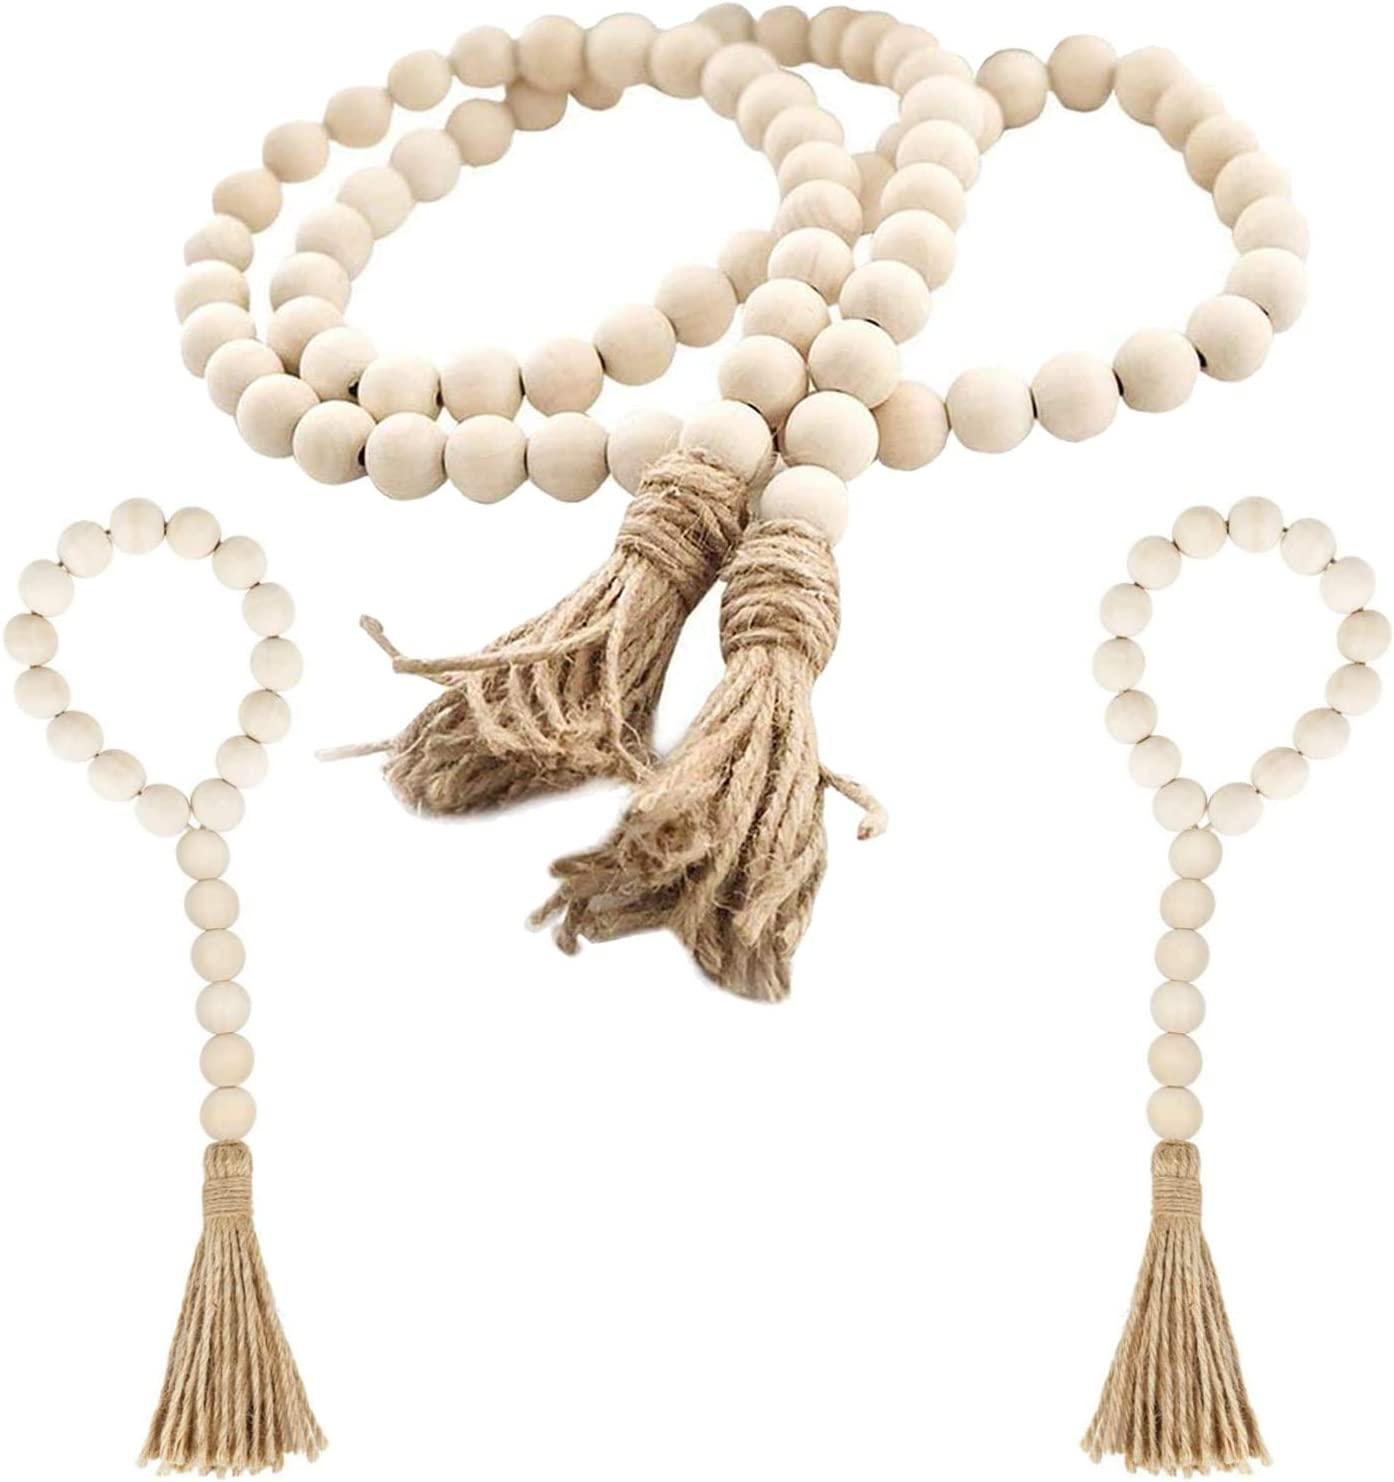 Taufey Wood Bead Garland with NEW before selling ☆ Prayer Opening large release sale Tassels Wooden Set Natural